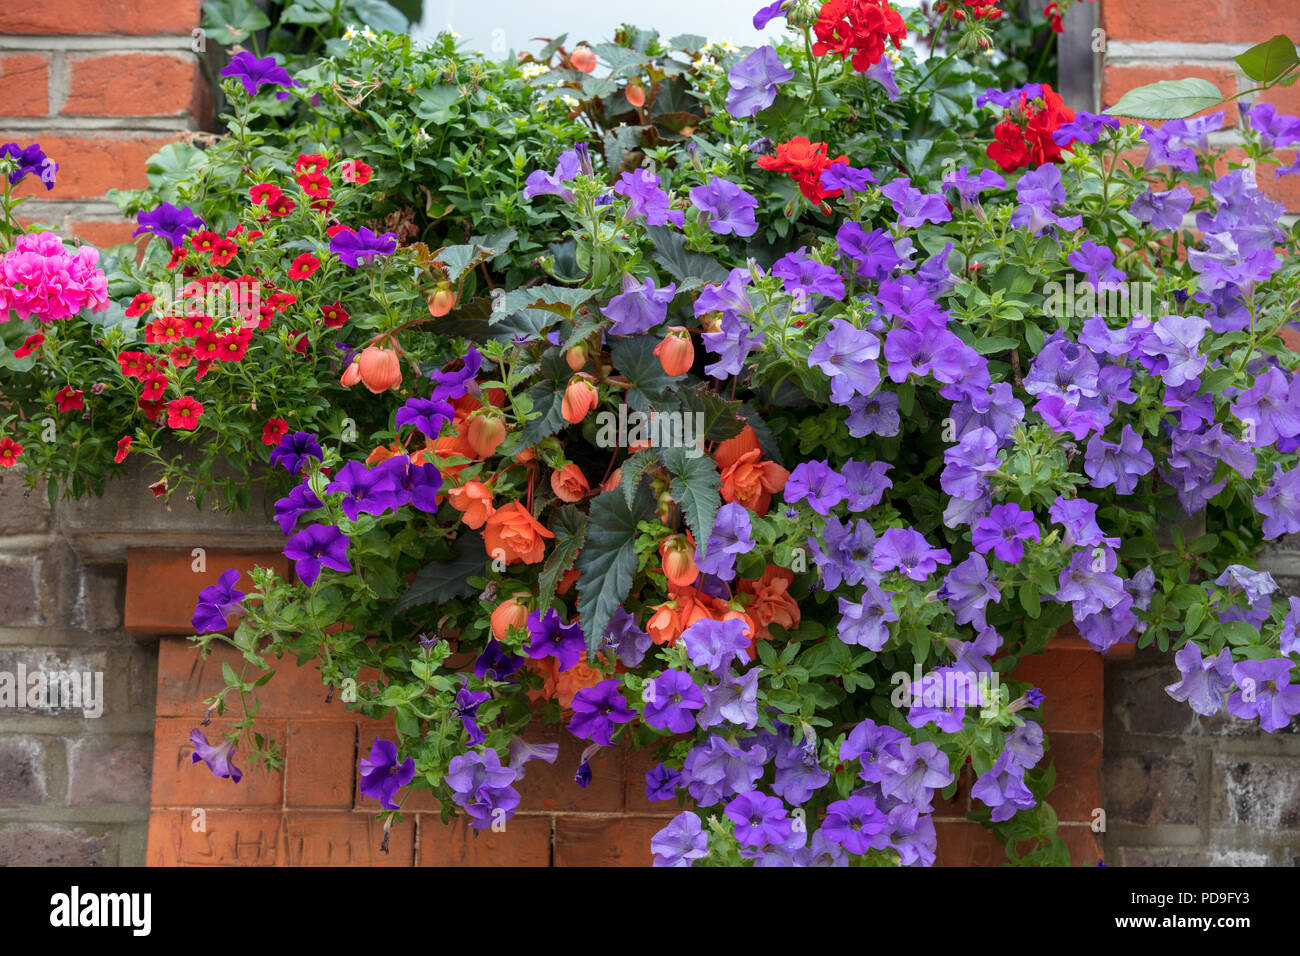 Window box with summer flowers and plants in Hampstead, London, UK - Stock Image